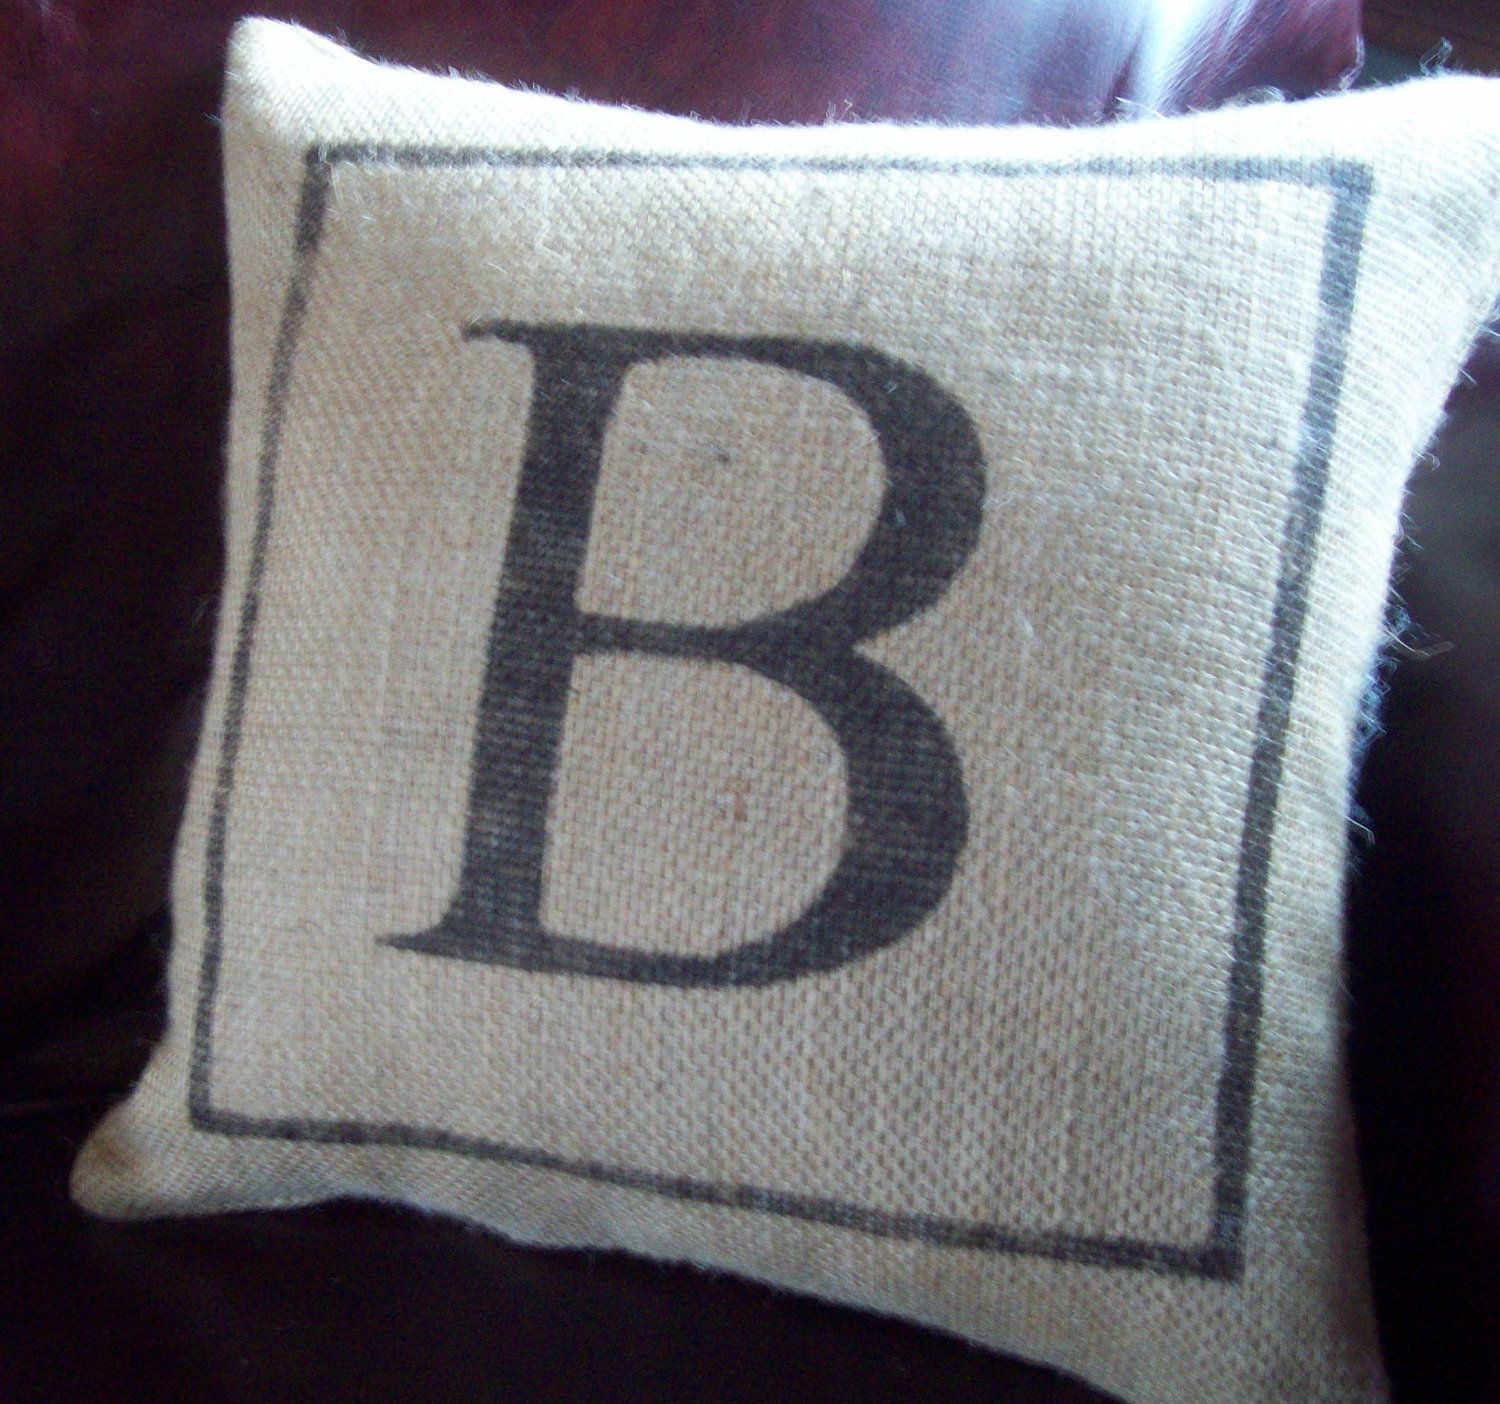 Burlap Throw Pillows Etsy : Burlap Initial Pillow / Custom Pillow / Monogram Pillow / Wedding or Anniversary Gift Pillow ...